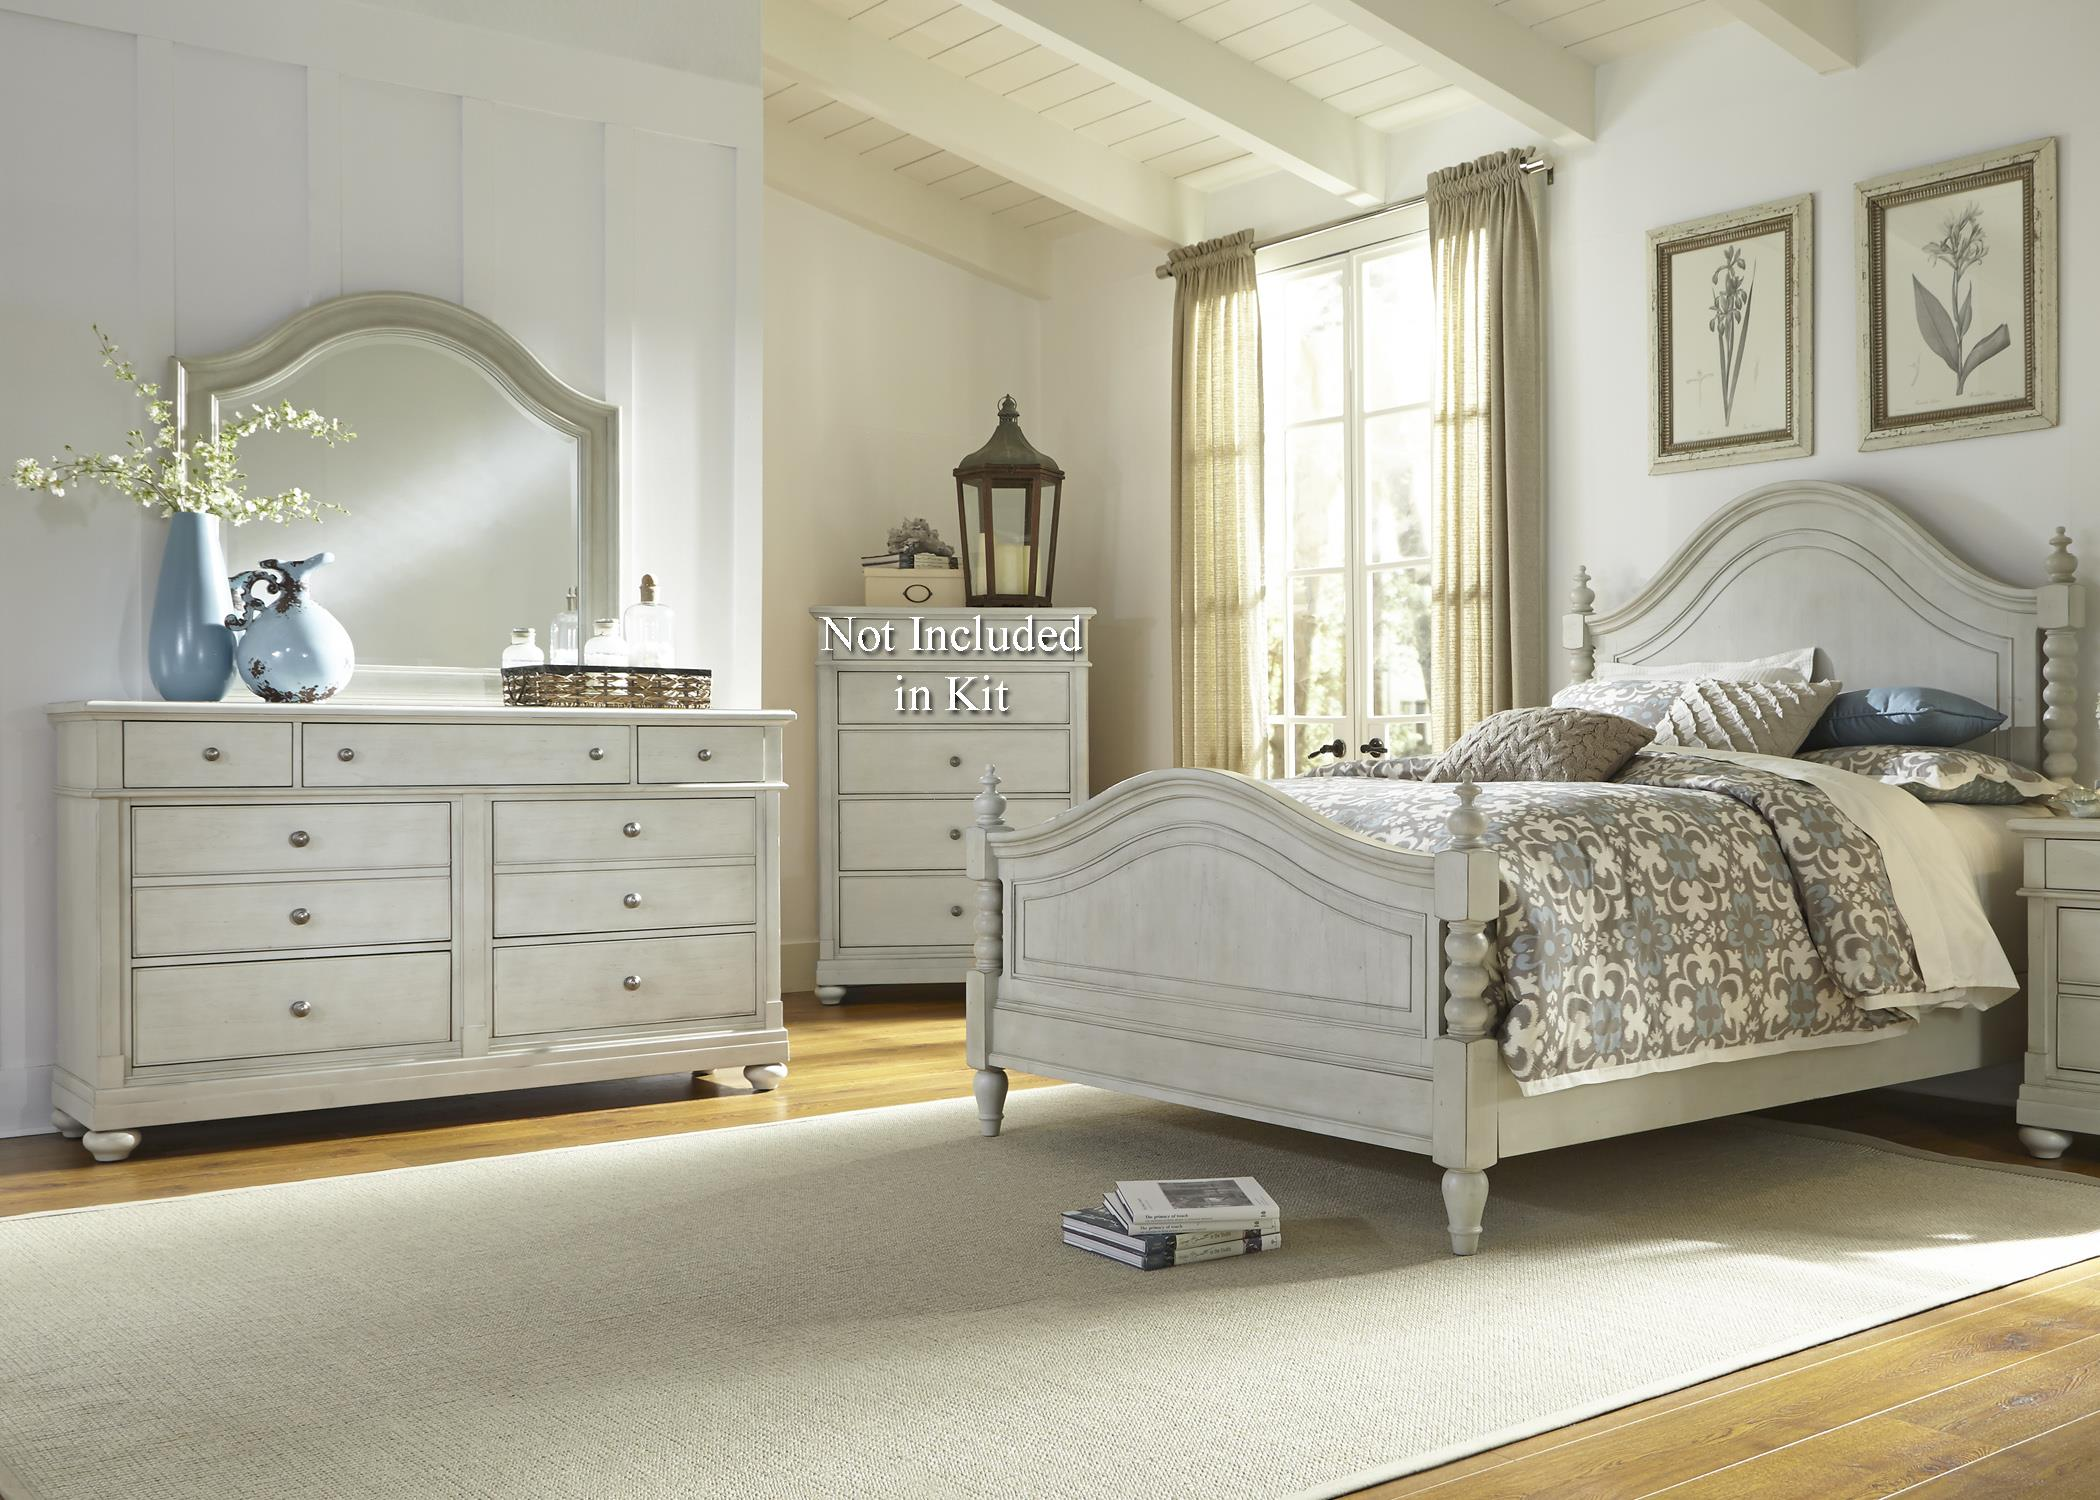 king poster bedroom groupliberty furniture  wolf and